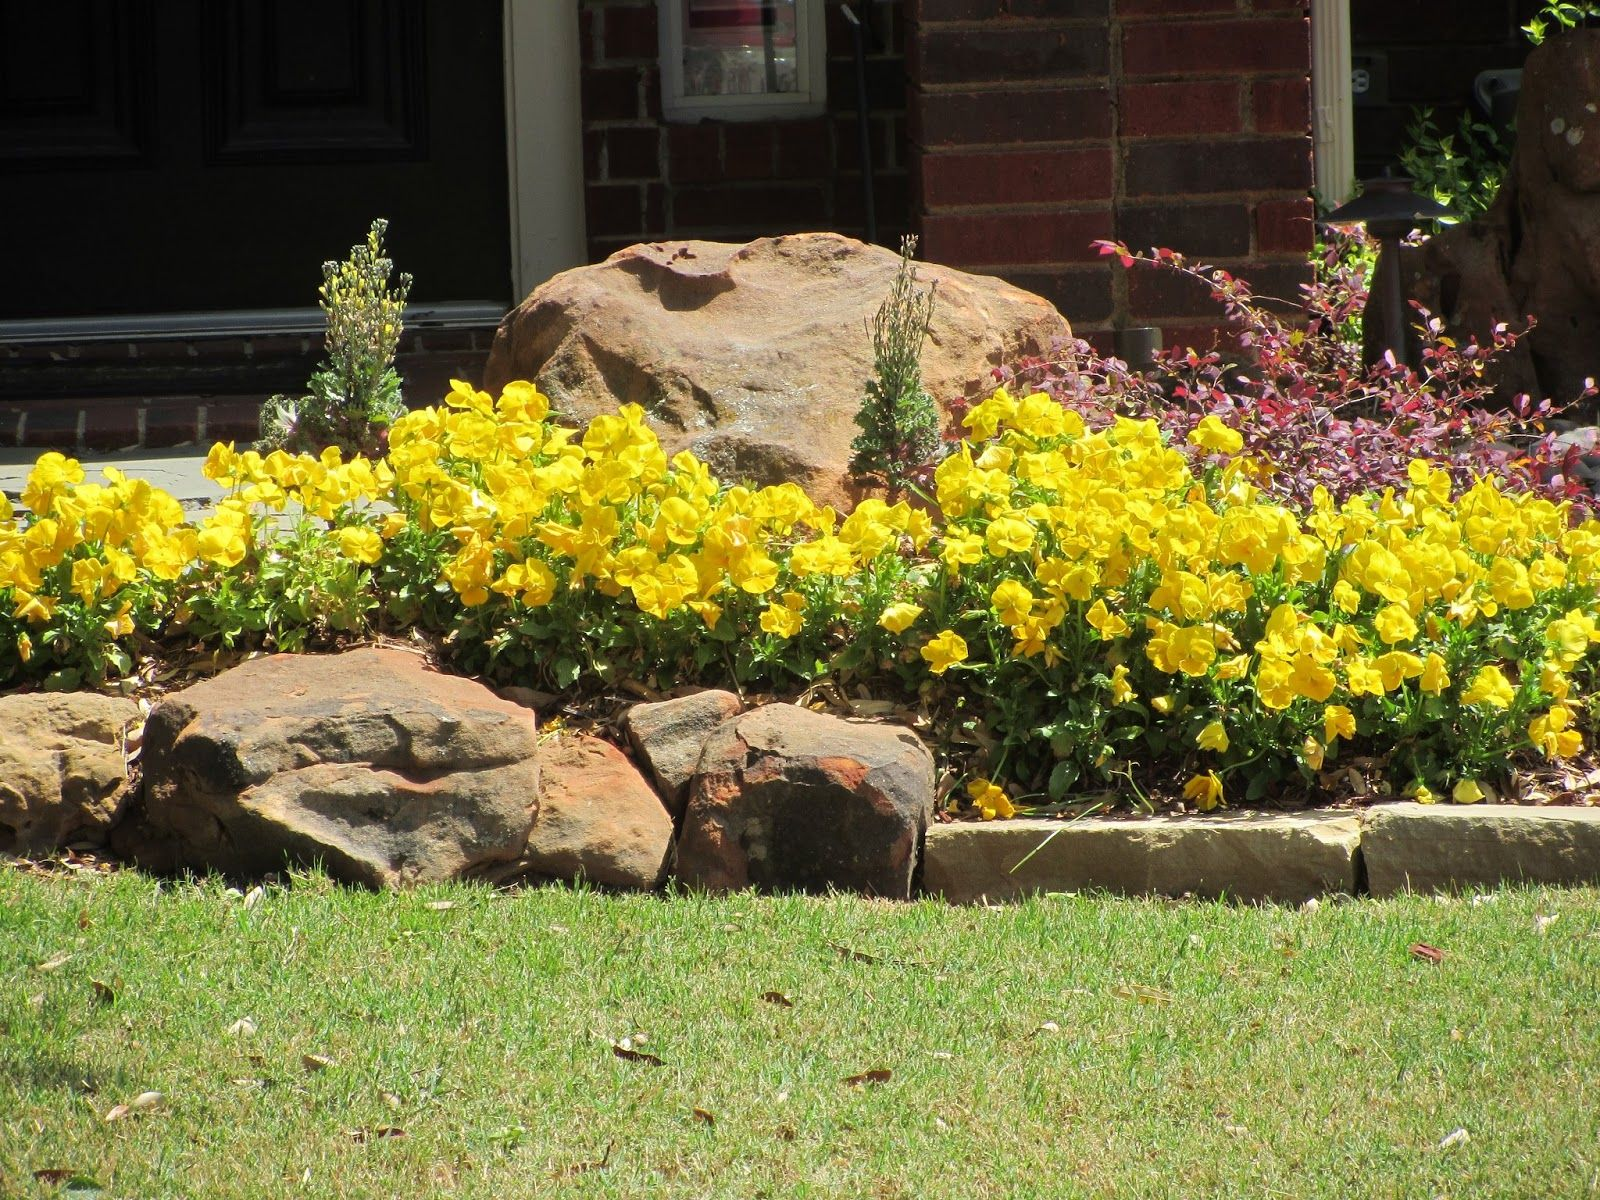 The lovely flower beds in this housing area also have rocks mixed in ...